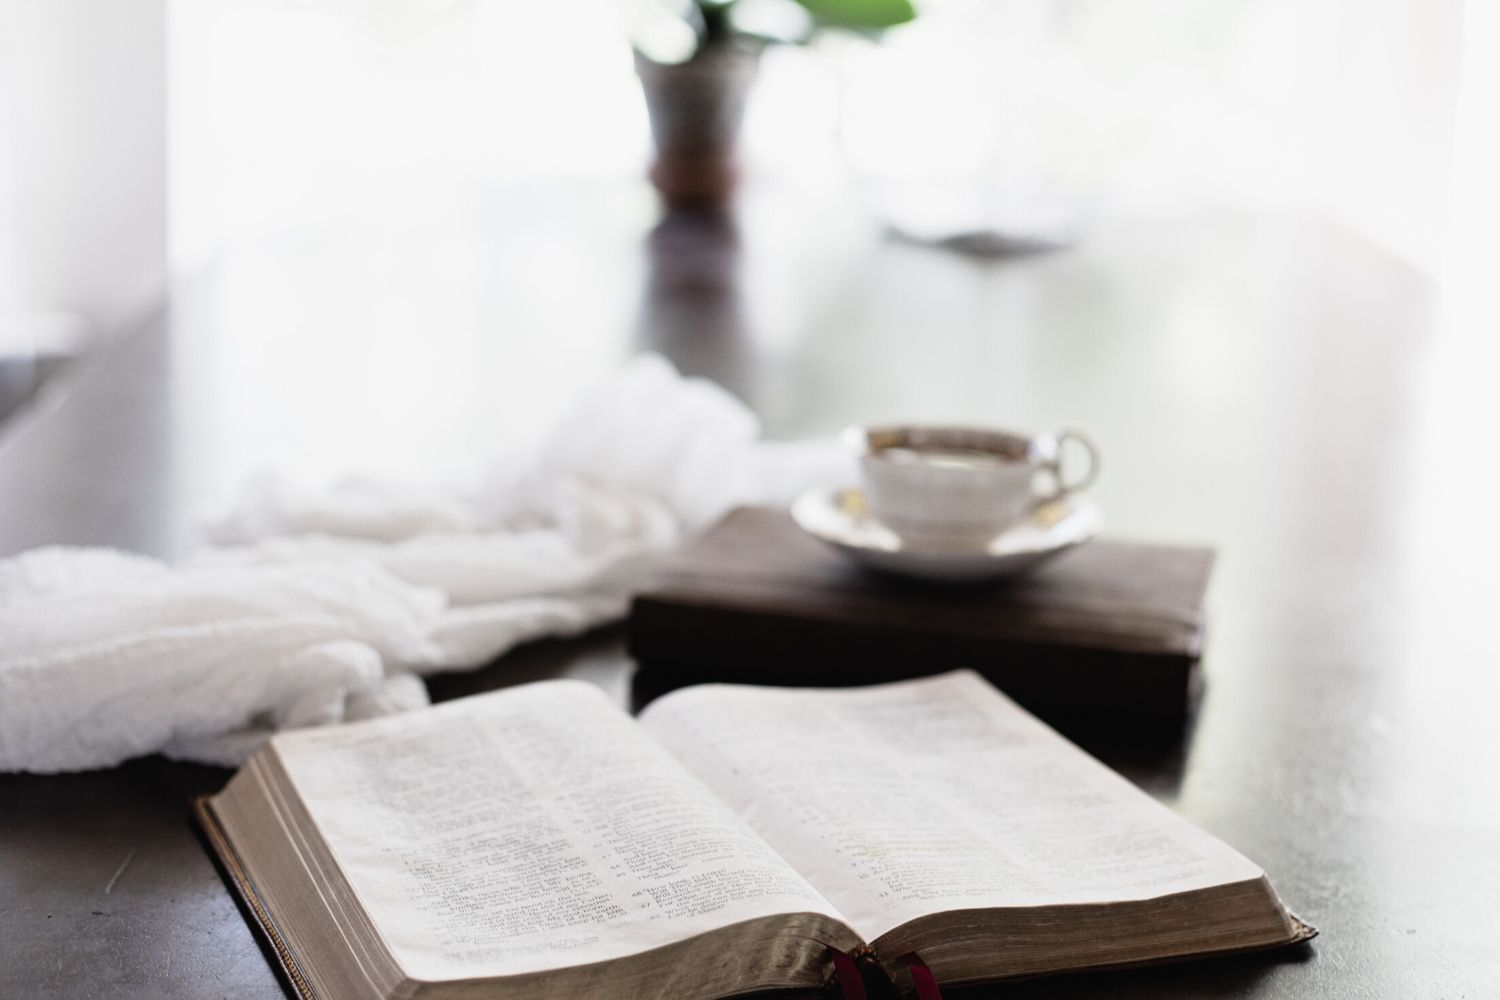 Bible, scarf and cup of coffee on dining room table